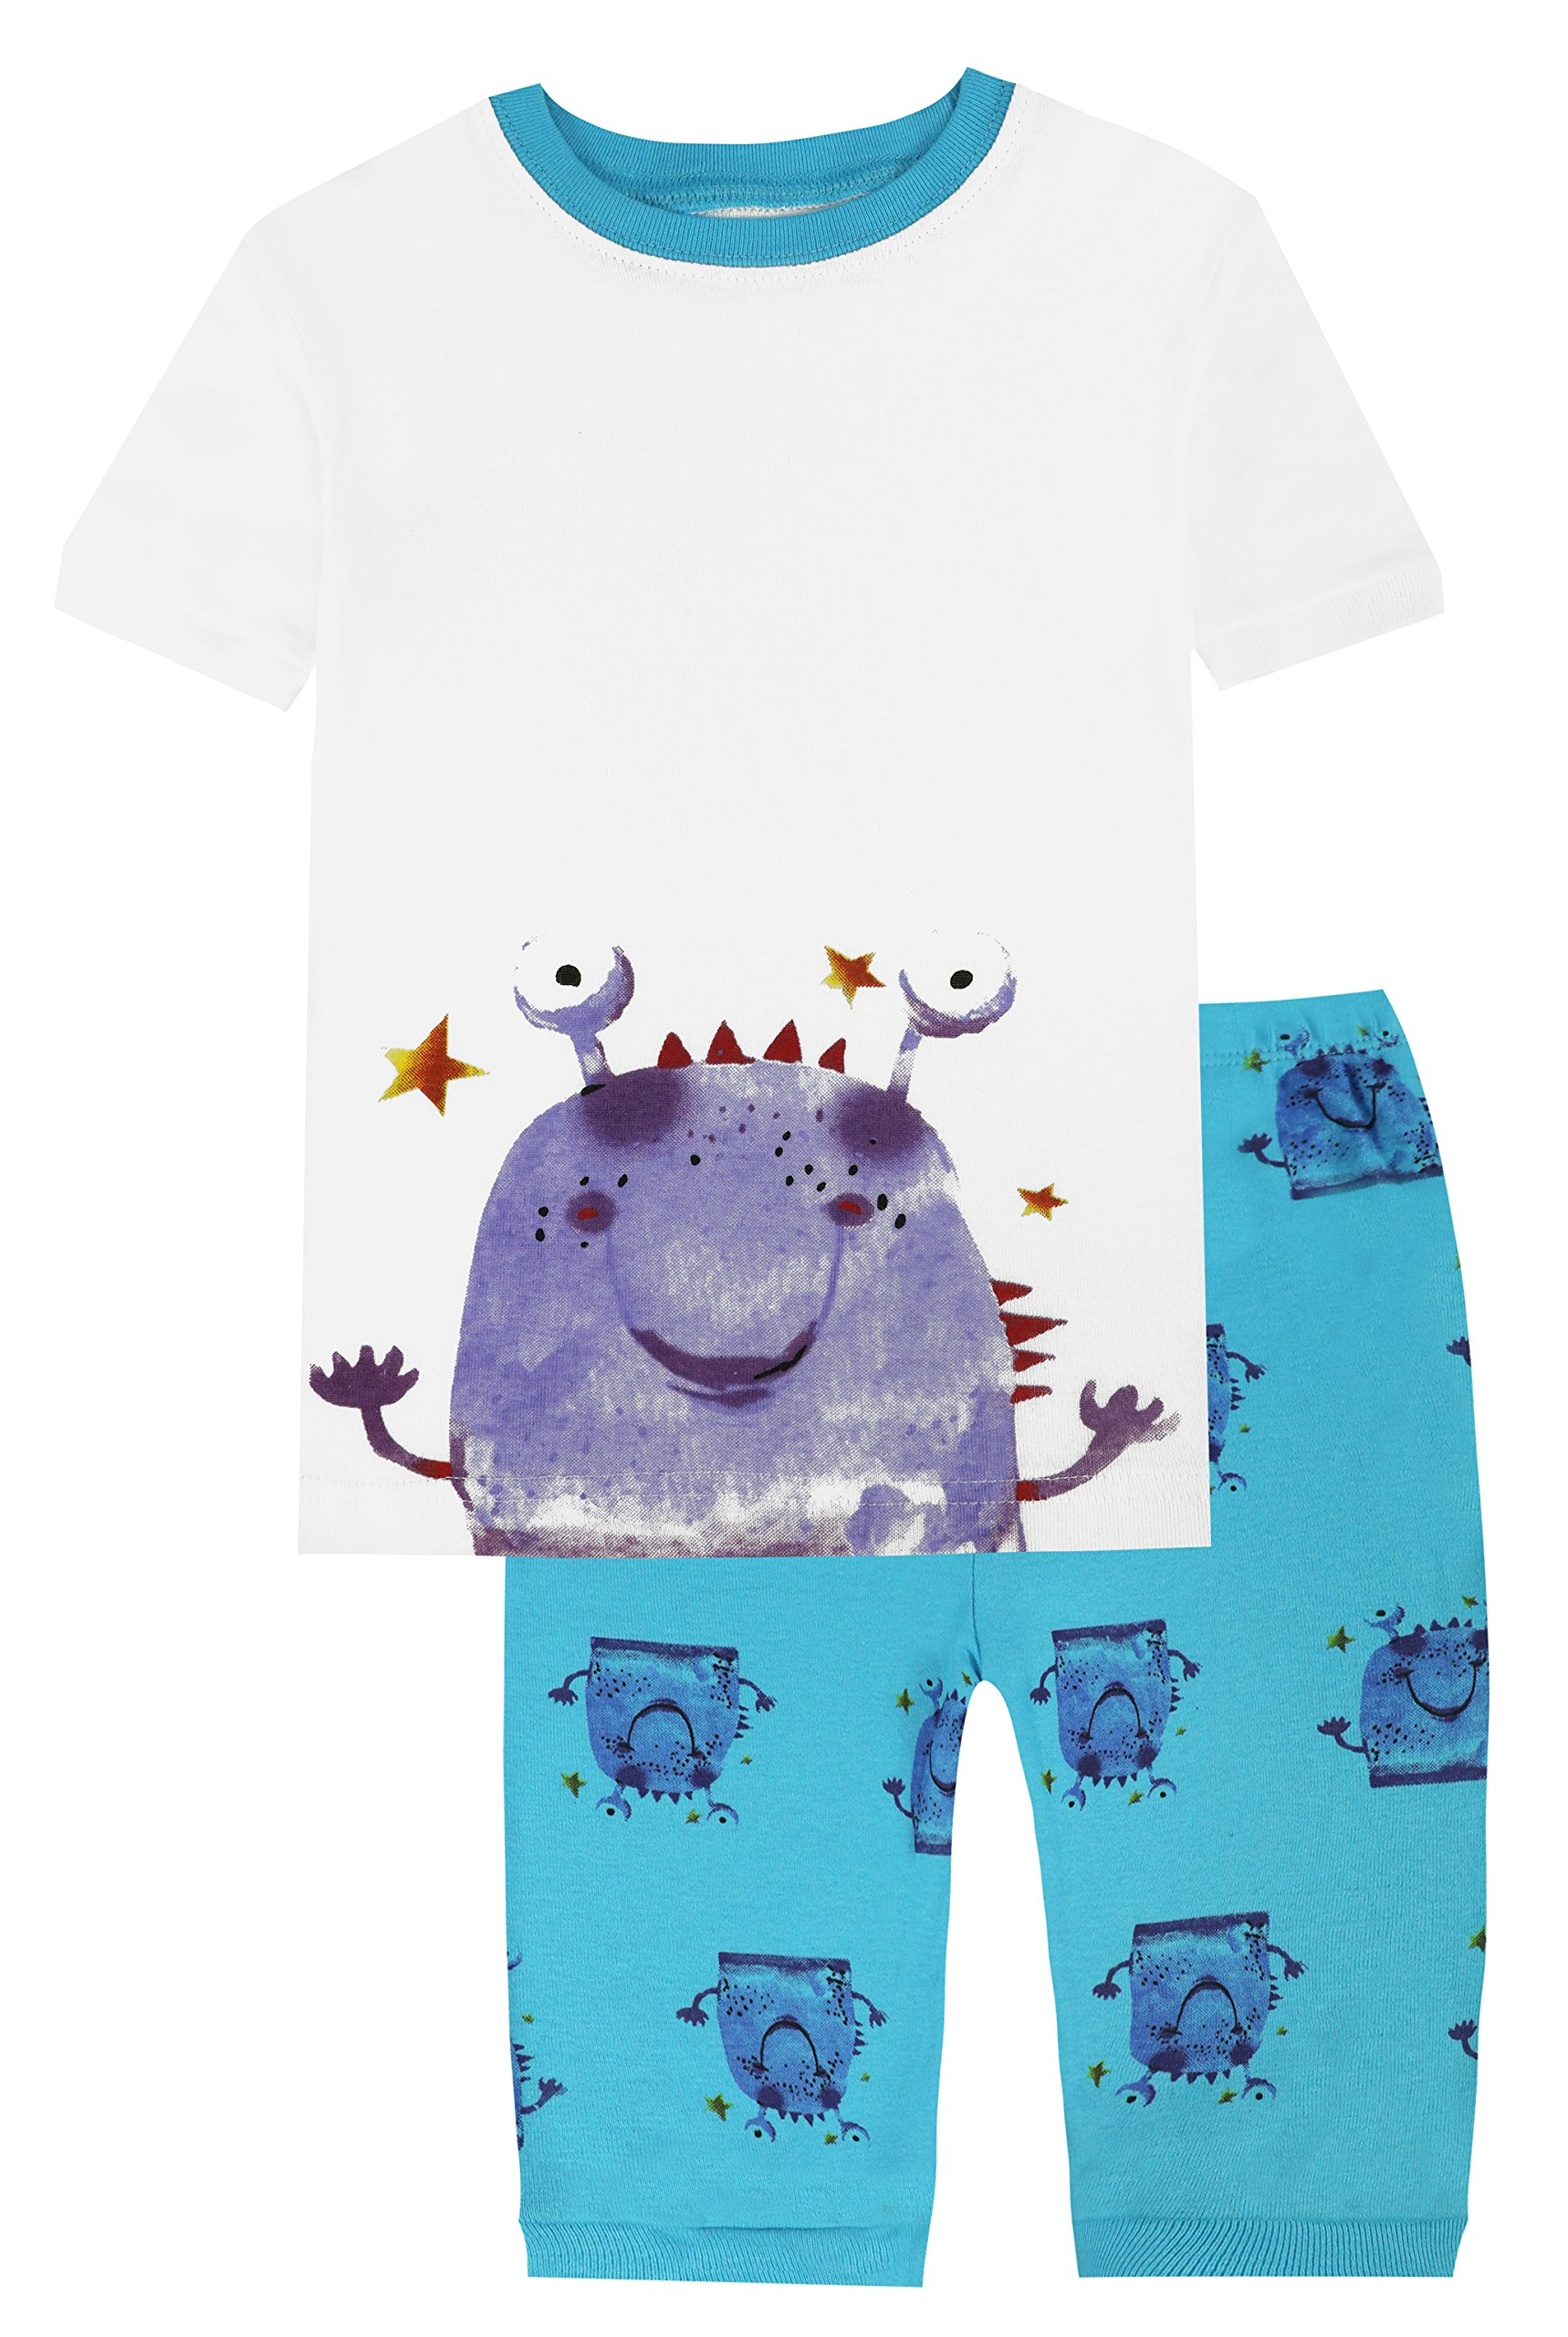 Slenily Little Boys Kids Pajamas Sets 100% Cotton Toddler Pjs Nightwear Size 6,White/Little Monster,